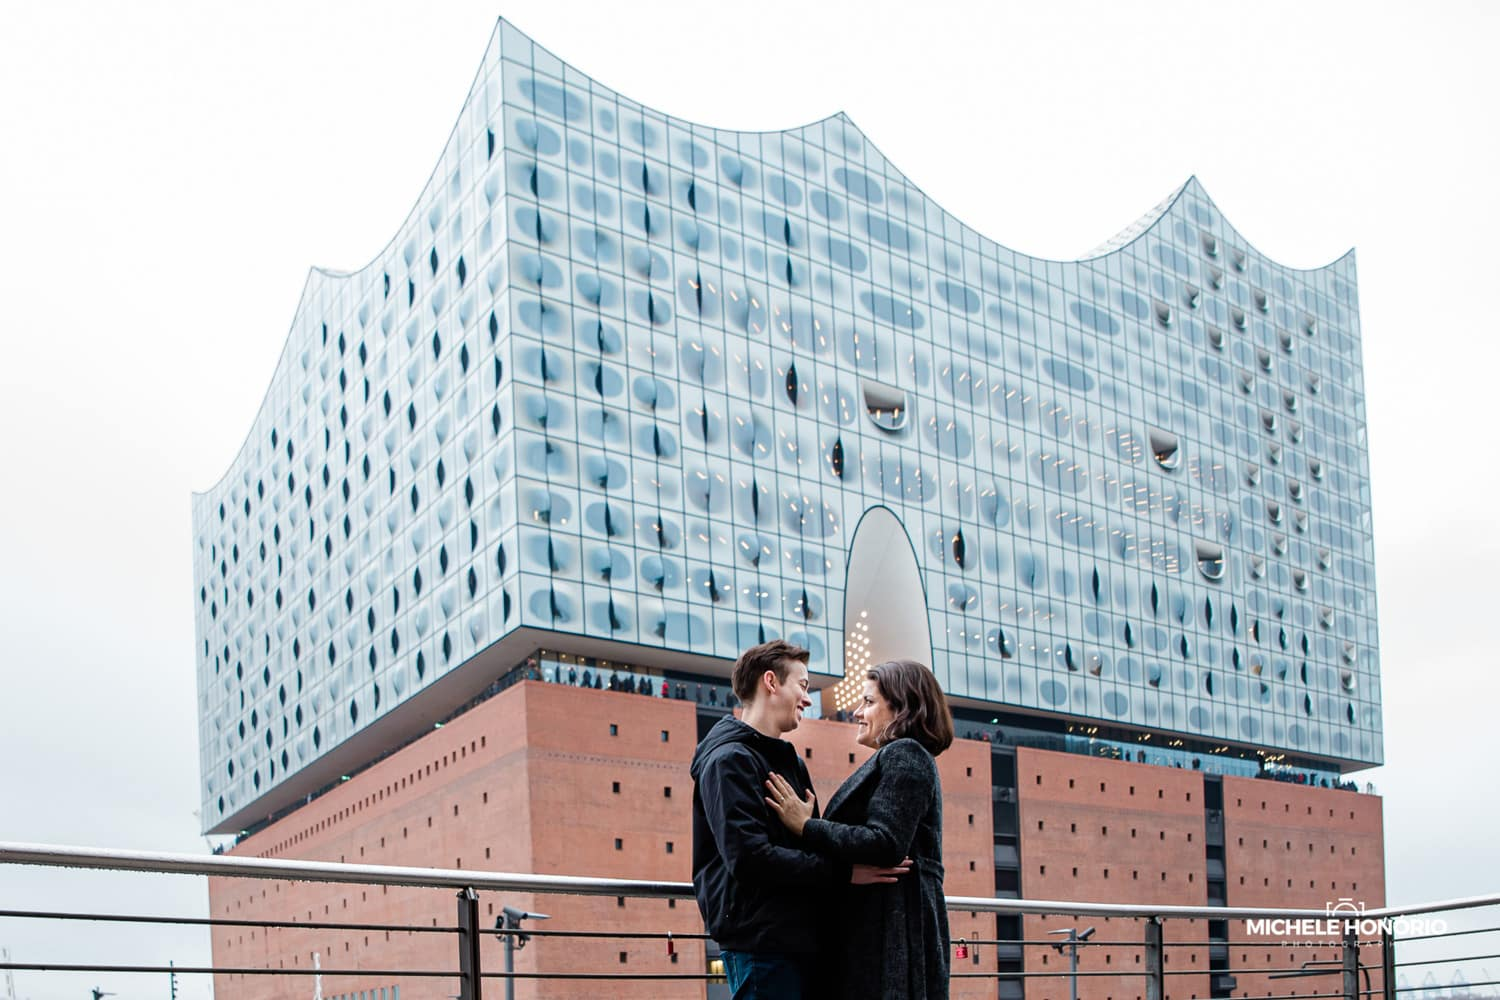 Paarshooting in Hamburg Elbphilharmonie